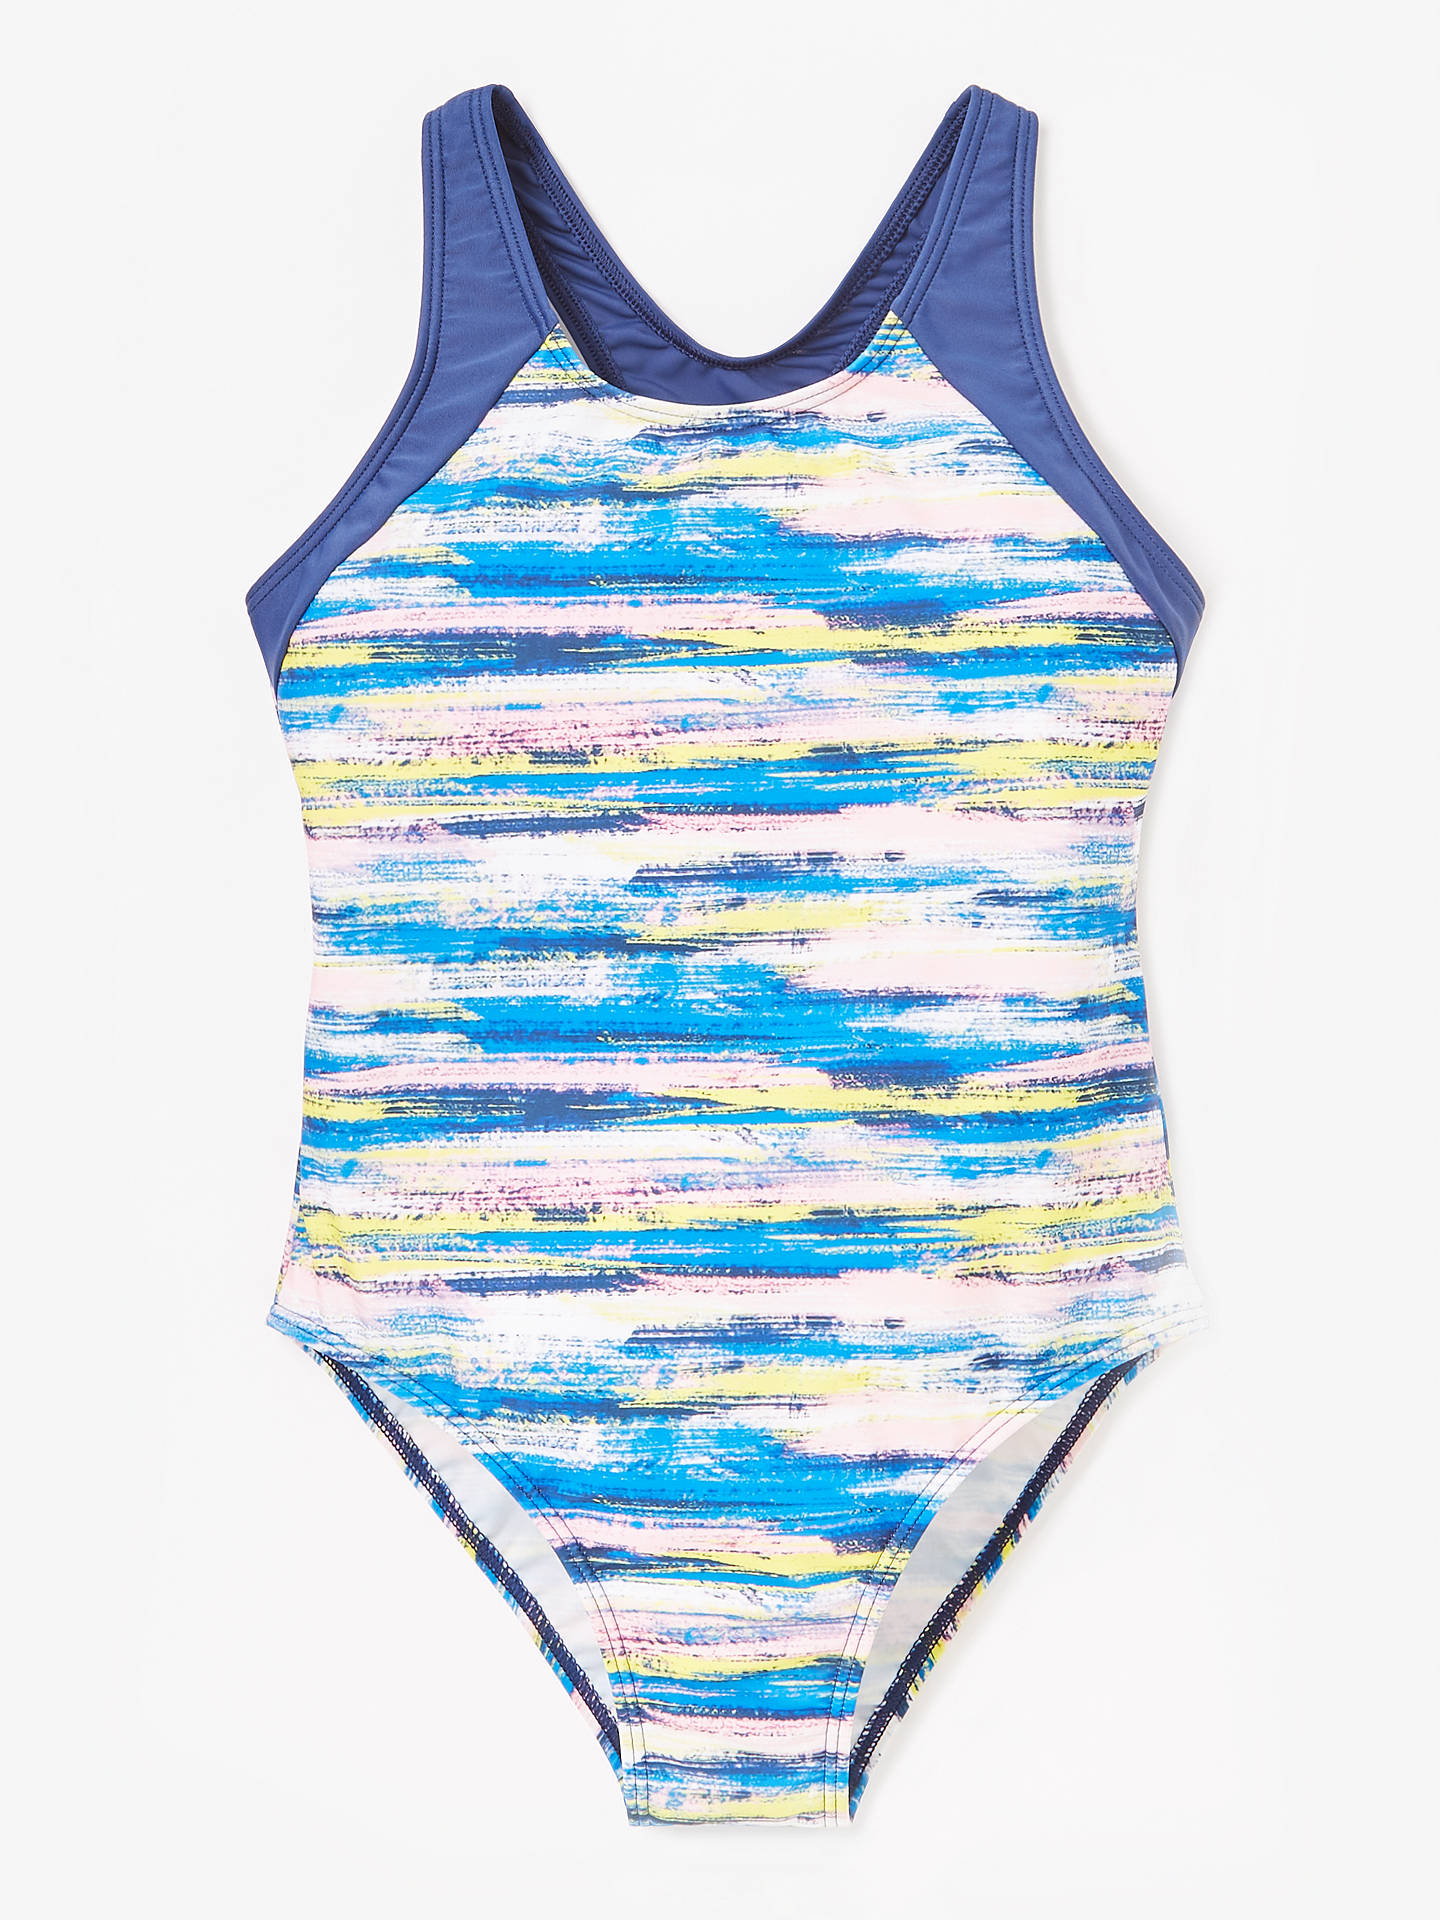 b61f23eb3c8b8 Buy John Lewis & Partners Girls' Paint Print Swimsuit, Blue, 13 years  Online ...